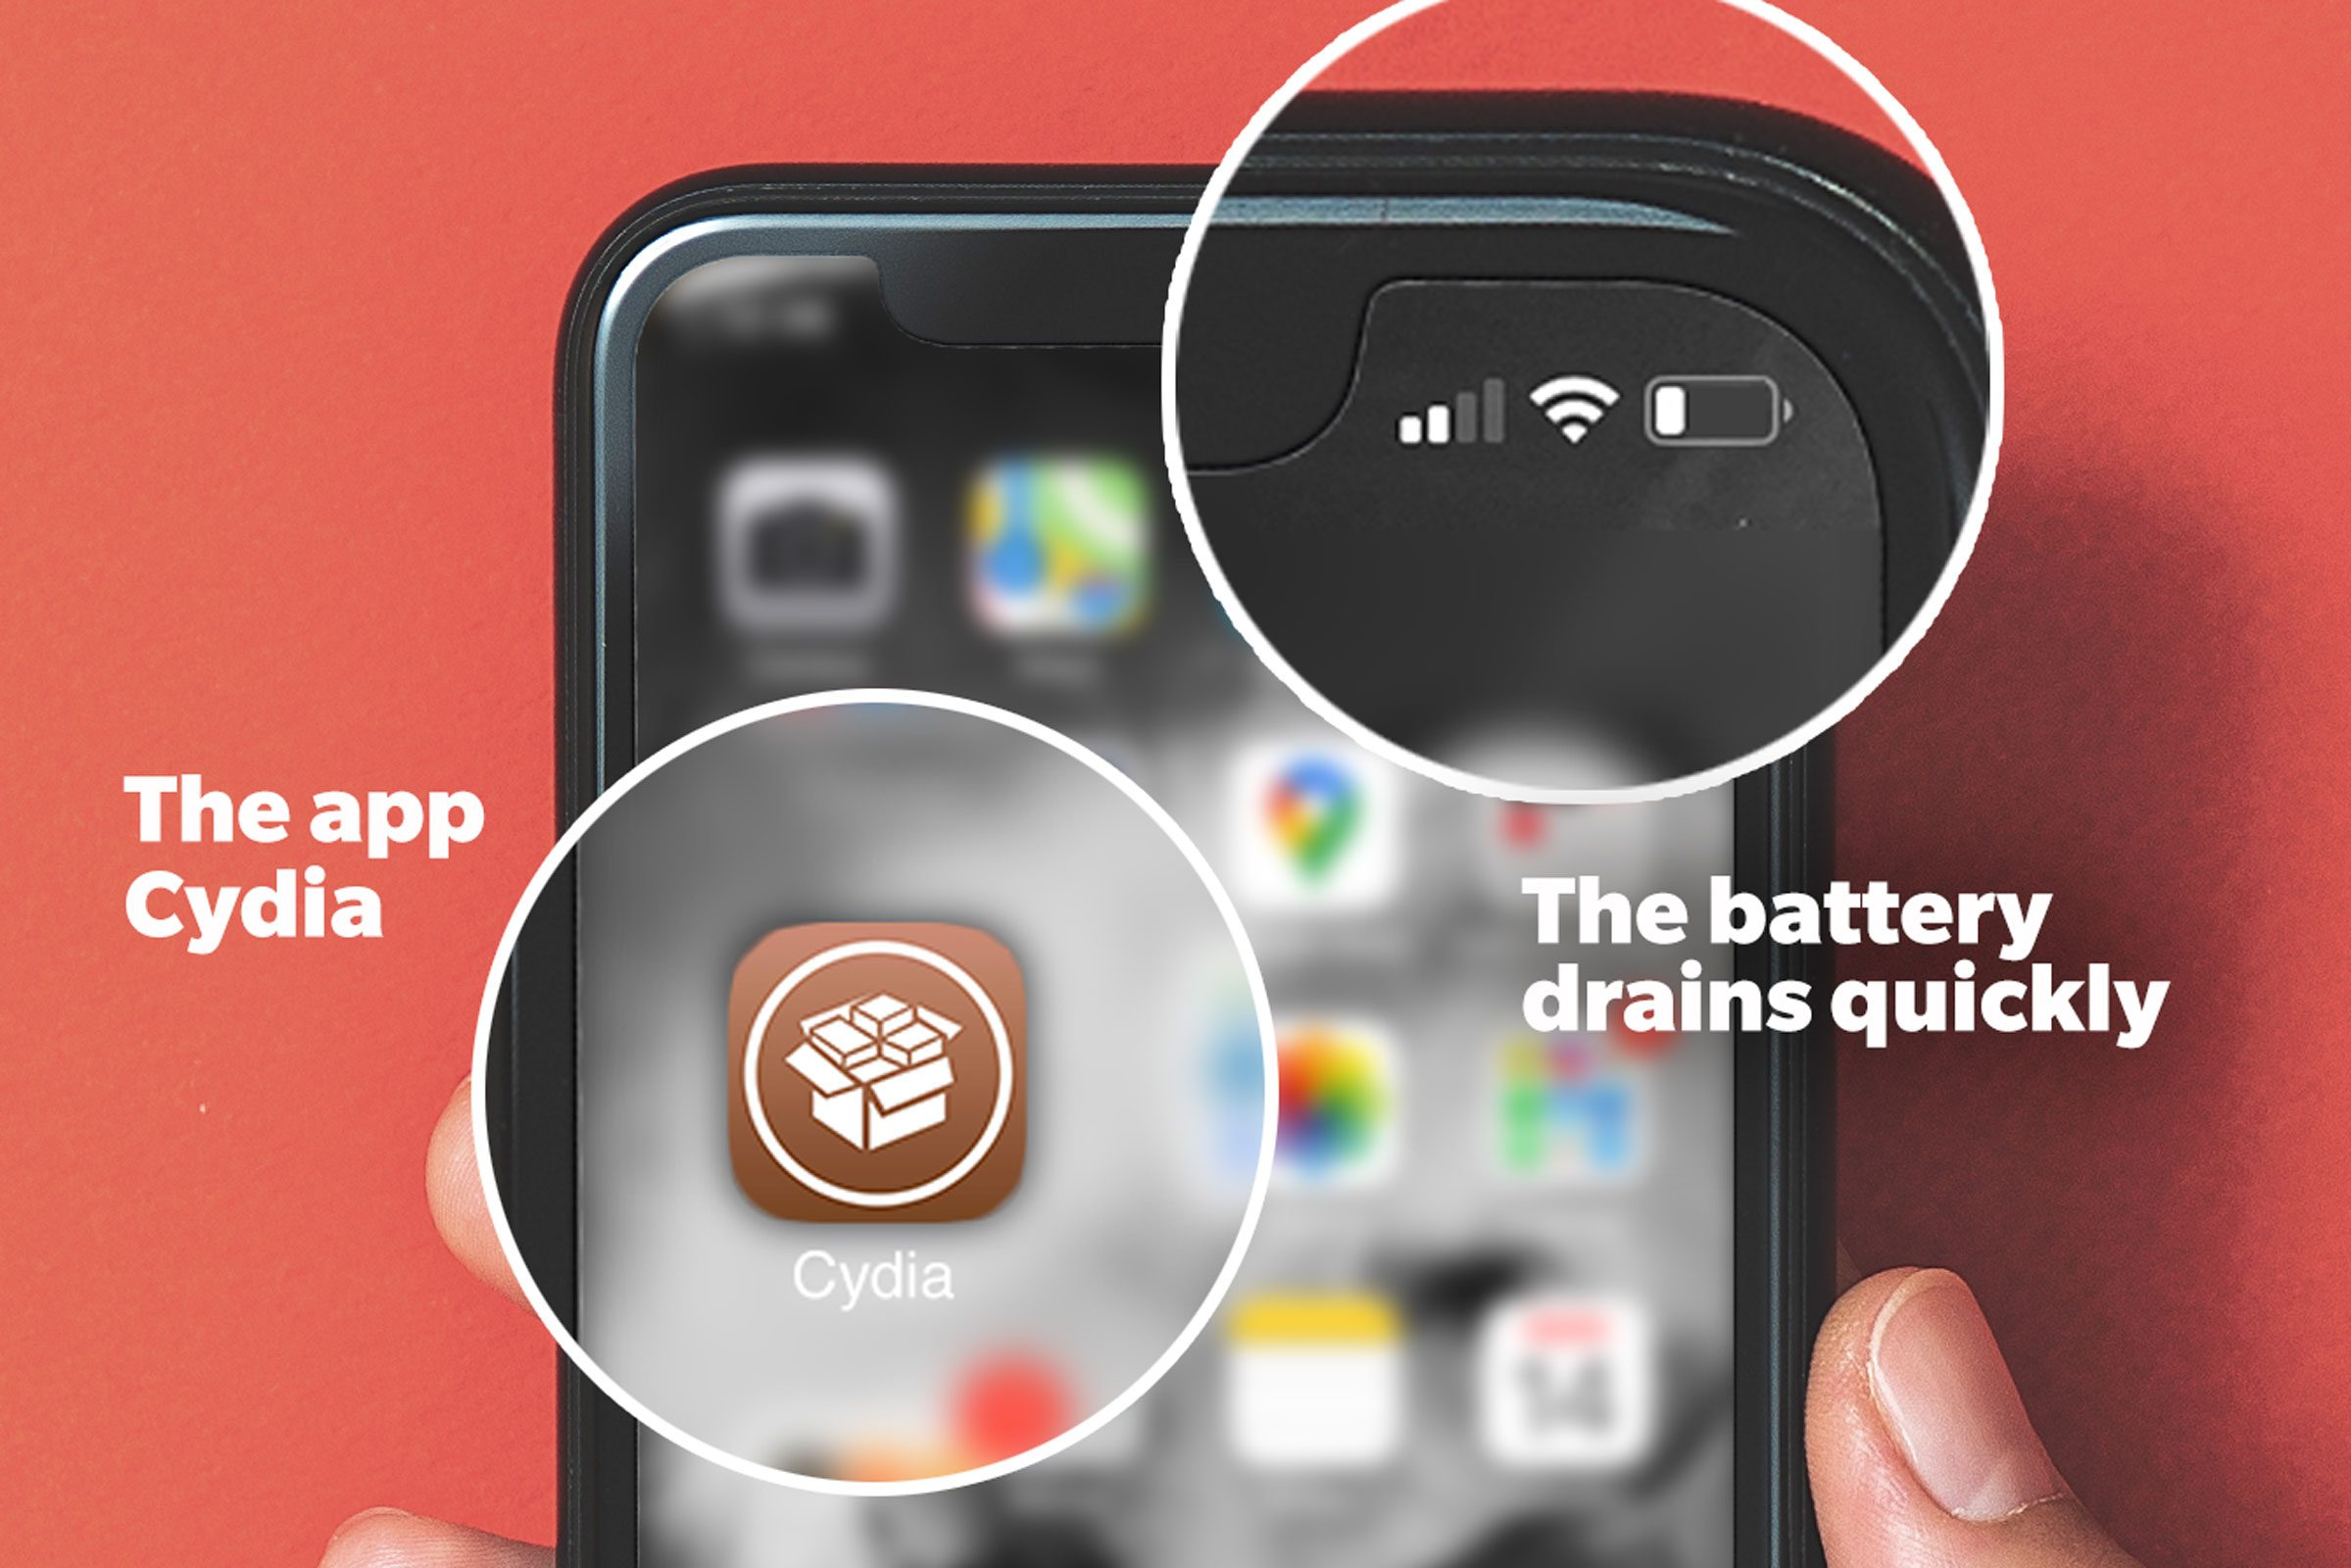 Two indications that there might be spyware installed on your phone: the app Cydia and a quickly-draining battery